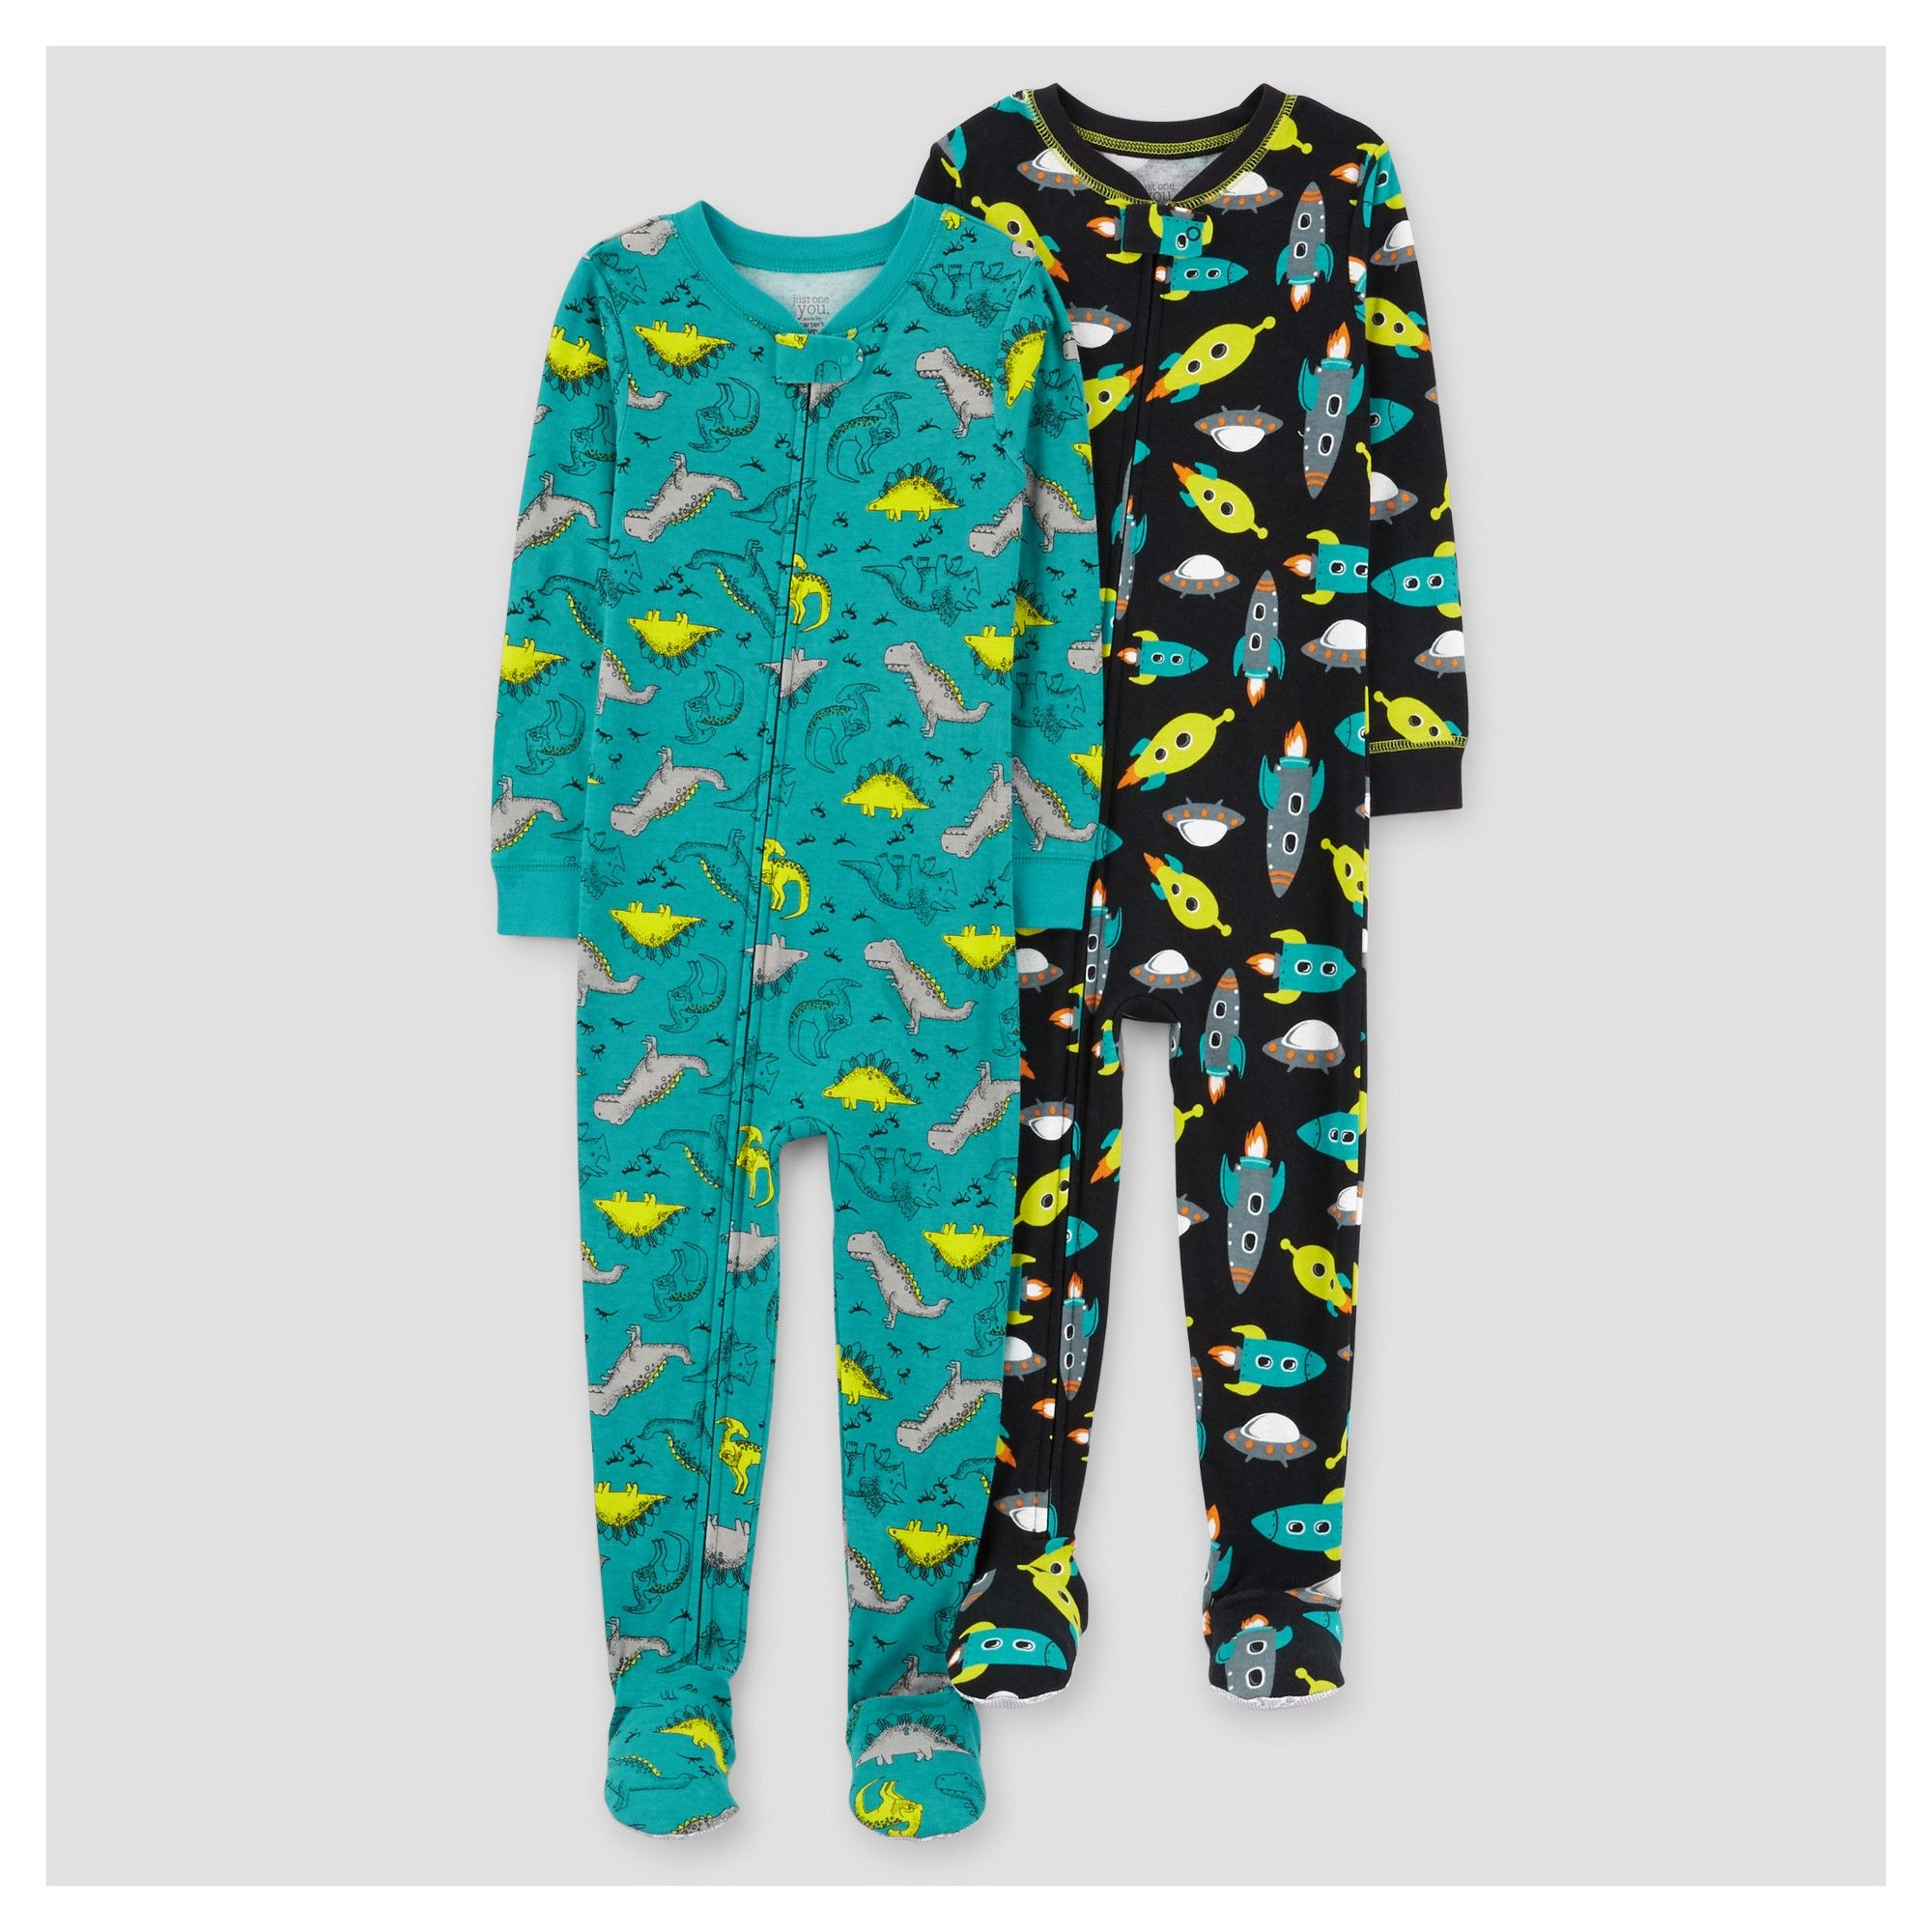 a44440f04 Toddler Boys  2pk Spaceships Dinosaurs Cotton Pajama - Just One You ...